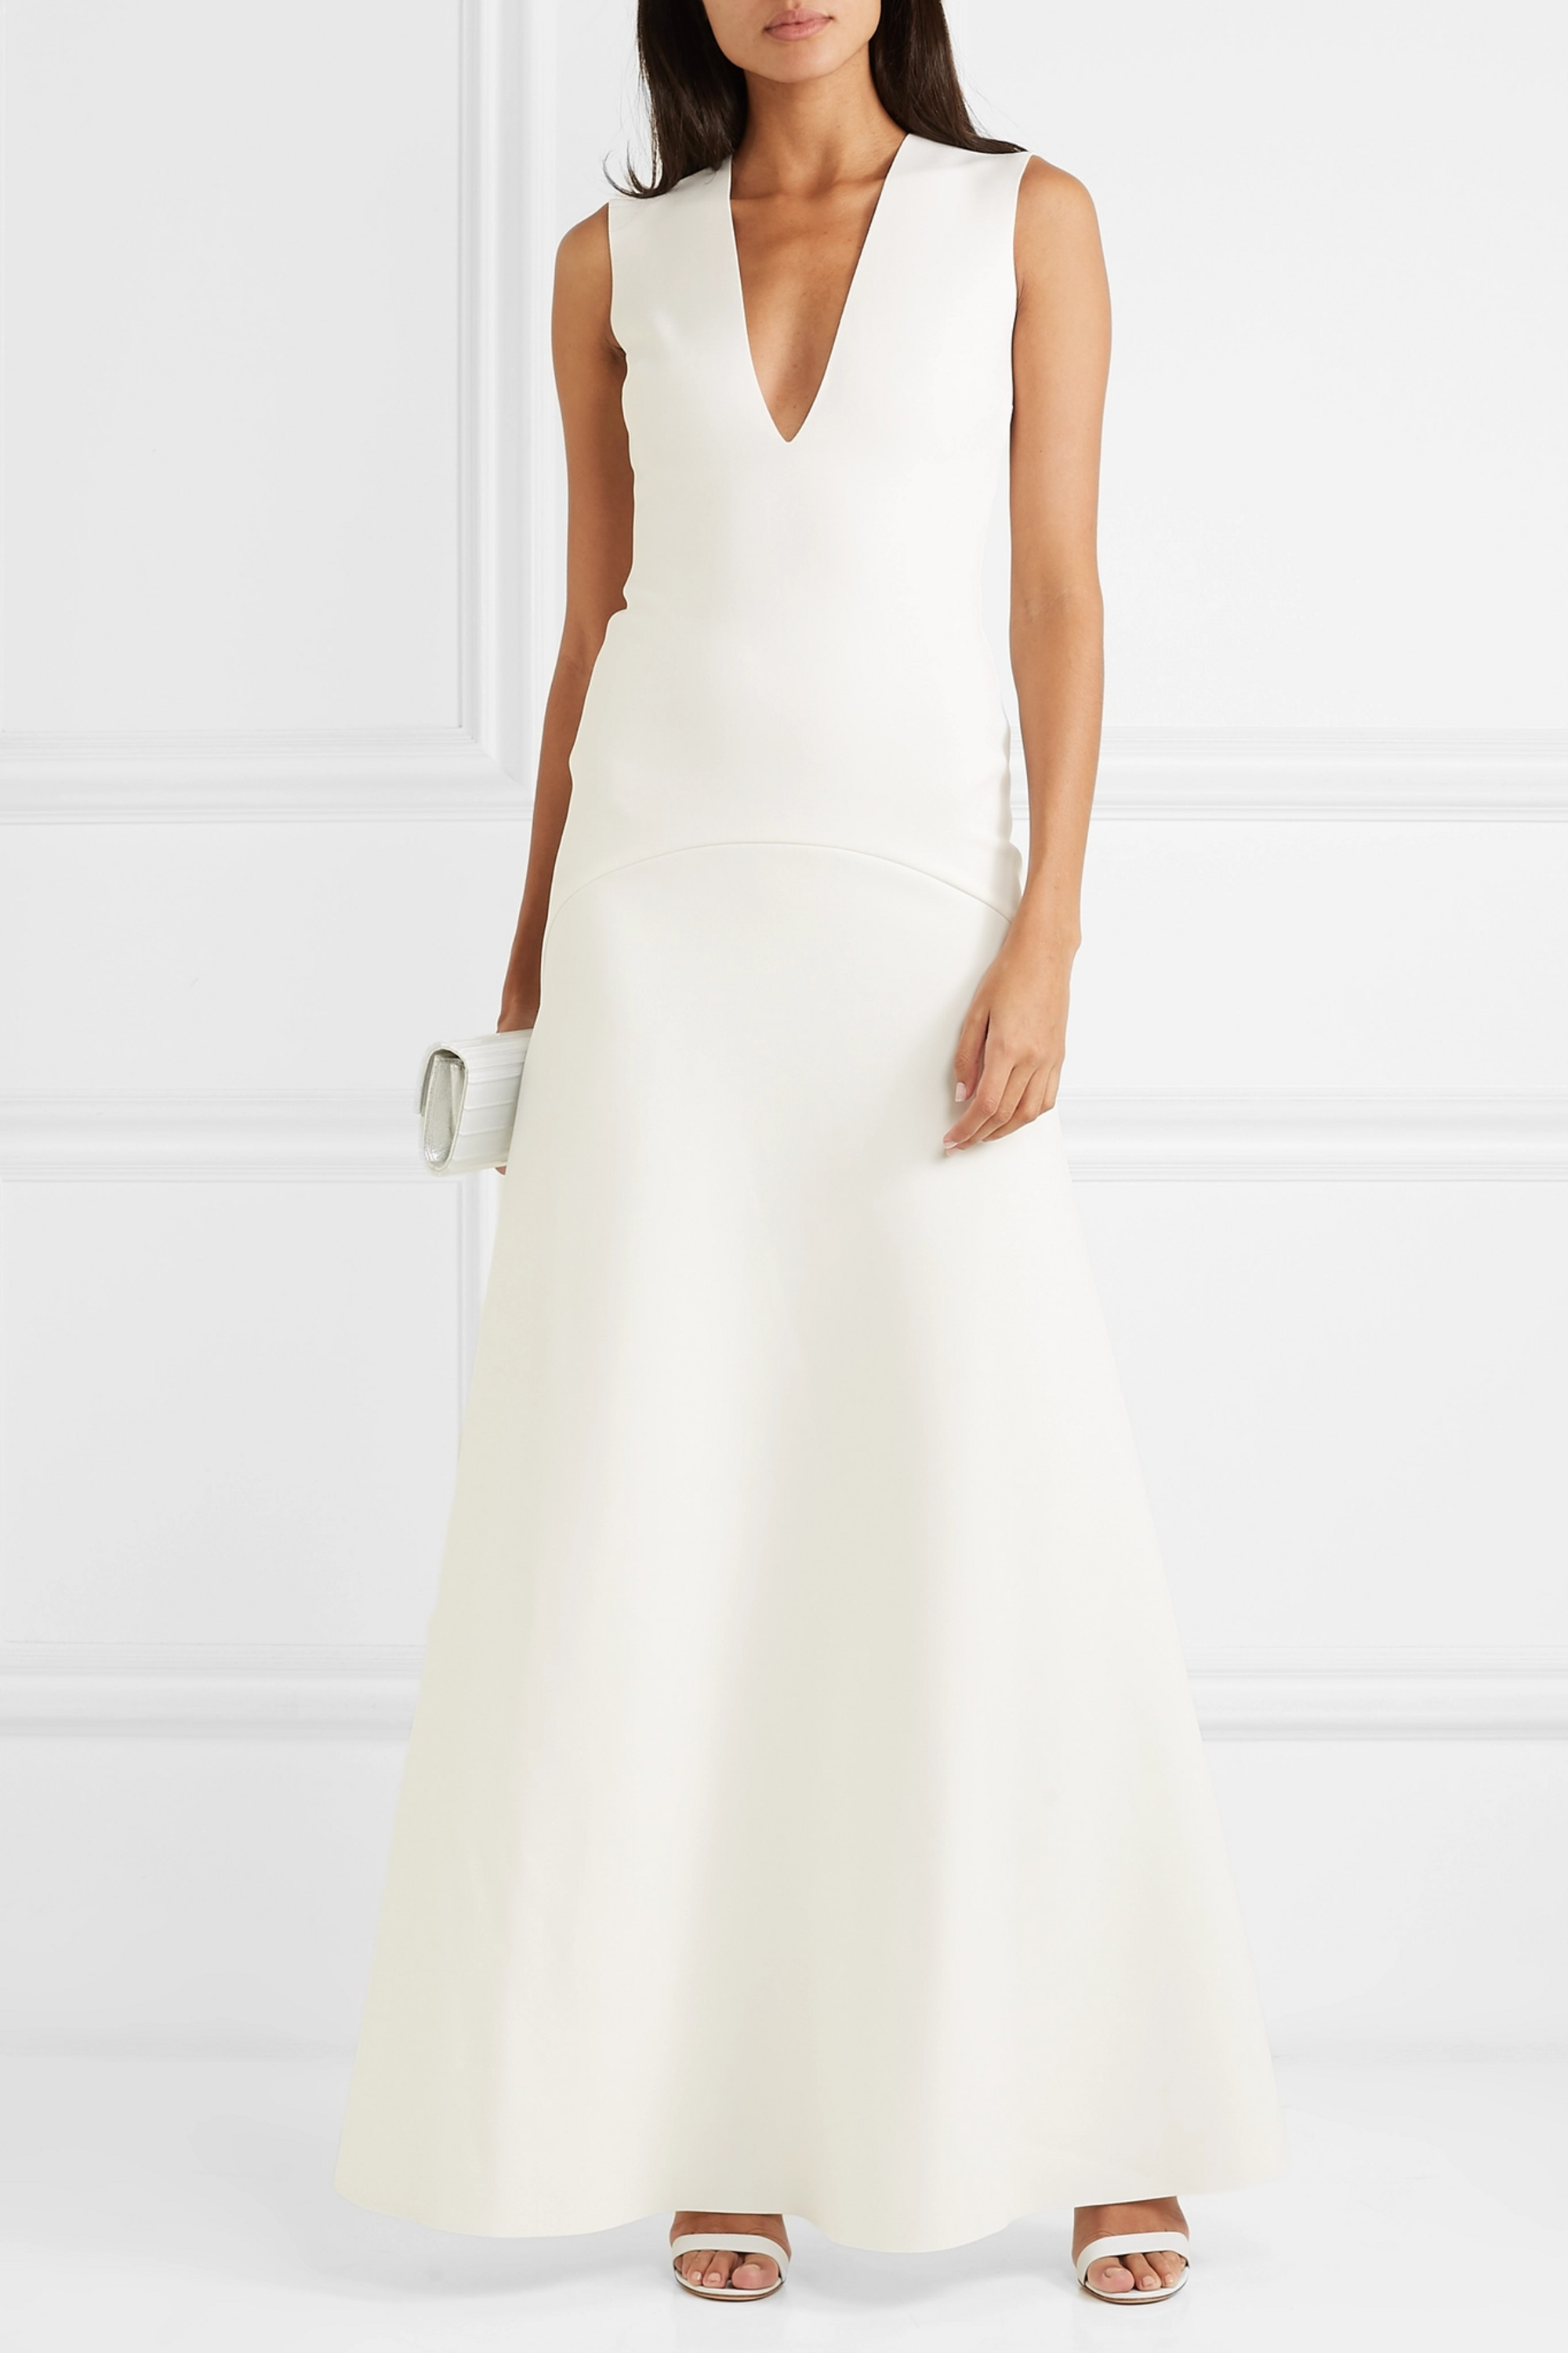 Solace London Seine stretch-cady gown